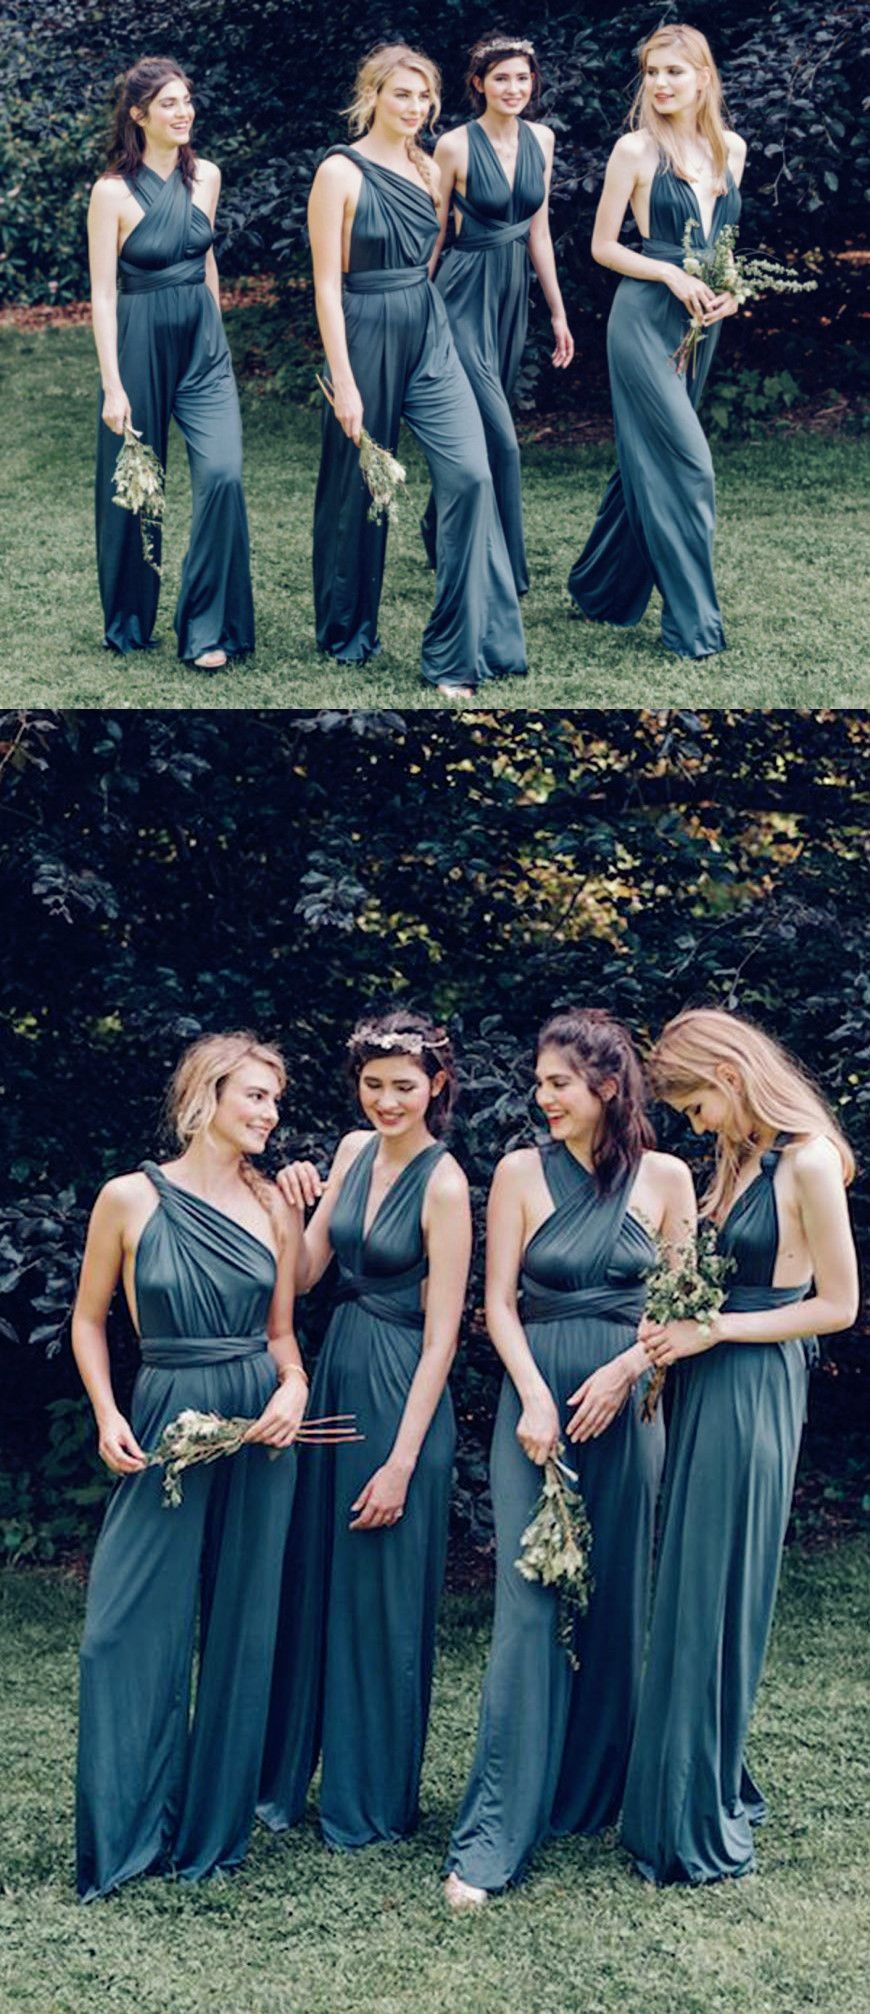 aac7335d0684 One Shoulder Backless Blue Chiffon Bridesmaid Jumpsuit With Sash ...